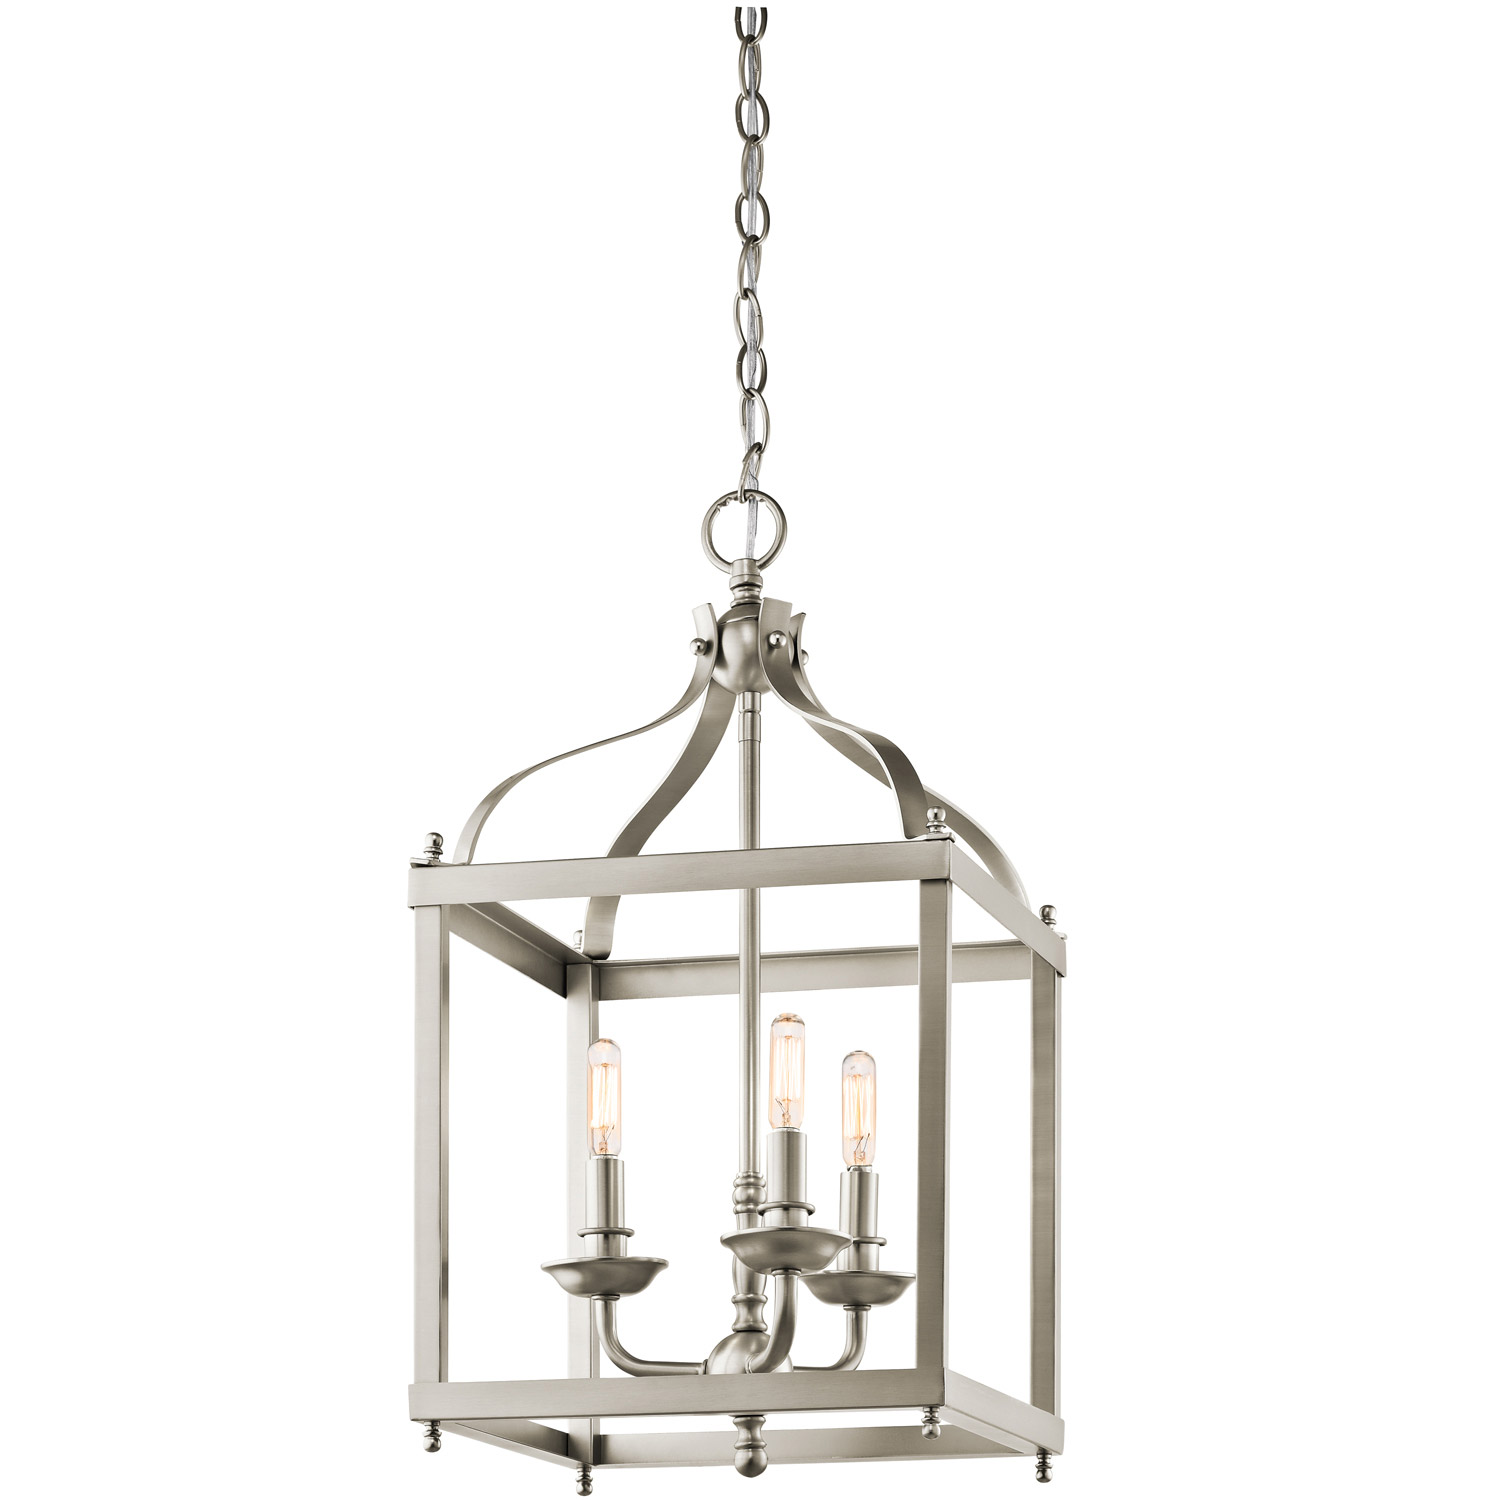 pin gentry lighting the light lantern sized collectio olde full pendants bronze indoor capitol inch from pendant foyer hinkley